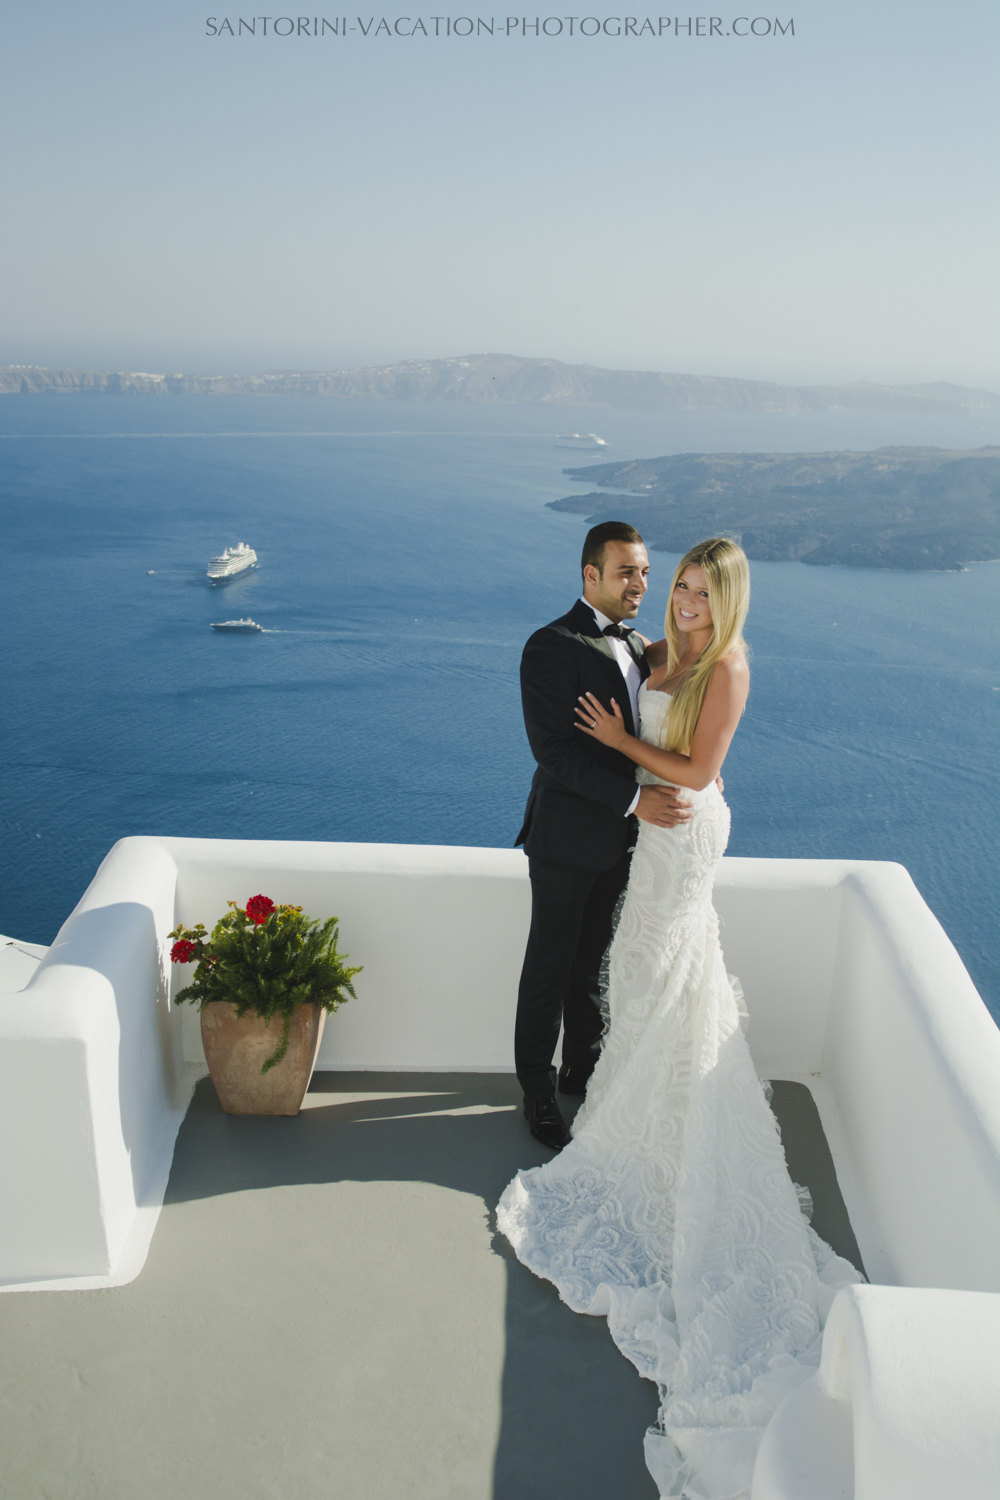 Santorini-post-wedding-shoot-honeymoon-destination-photo-session-003